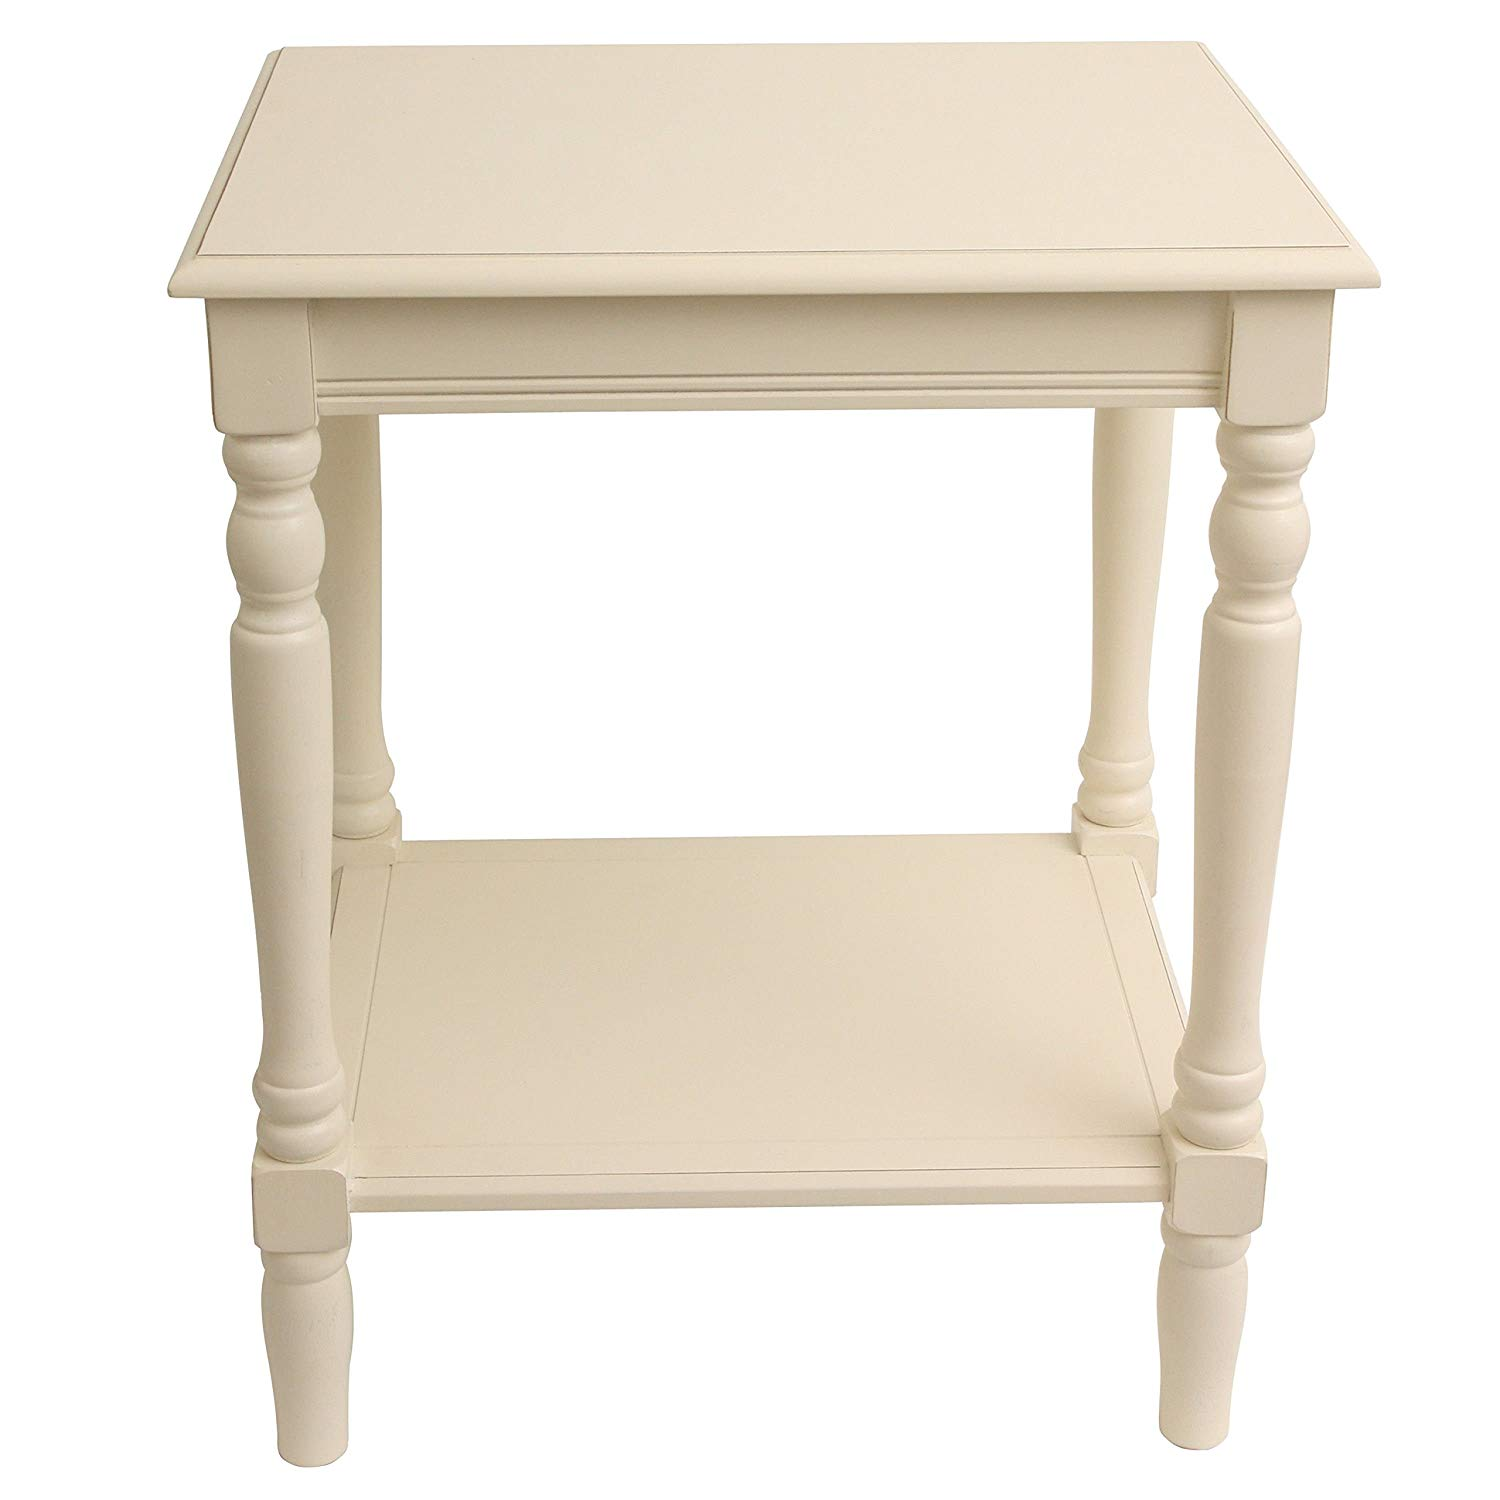 painted antique white end accent table with bottom shelf whitewash kitchen dining living room lounge chair side marble top and iron coffee outdoor cart space saver west elm chairs